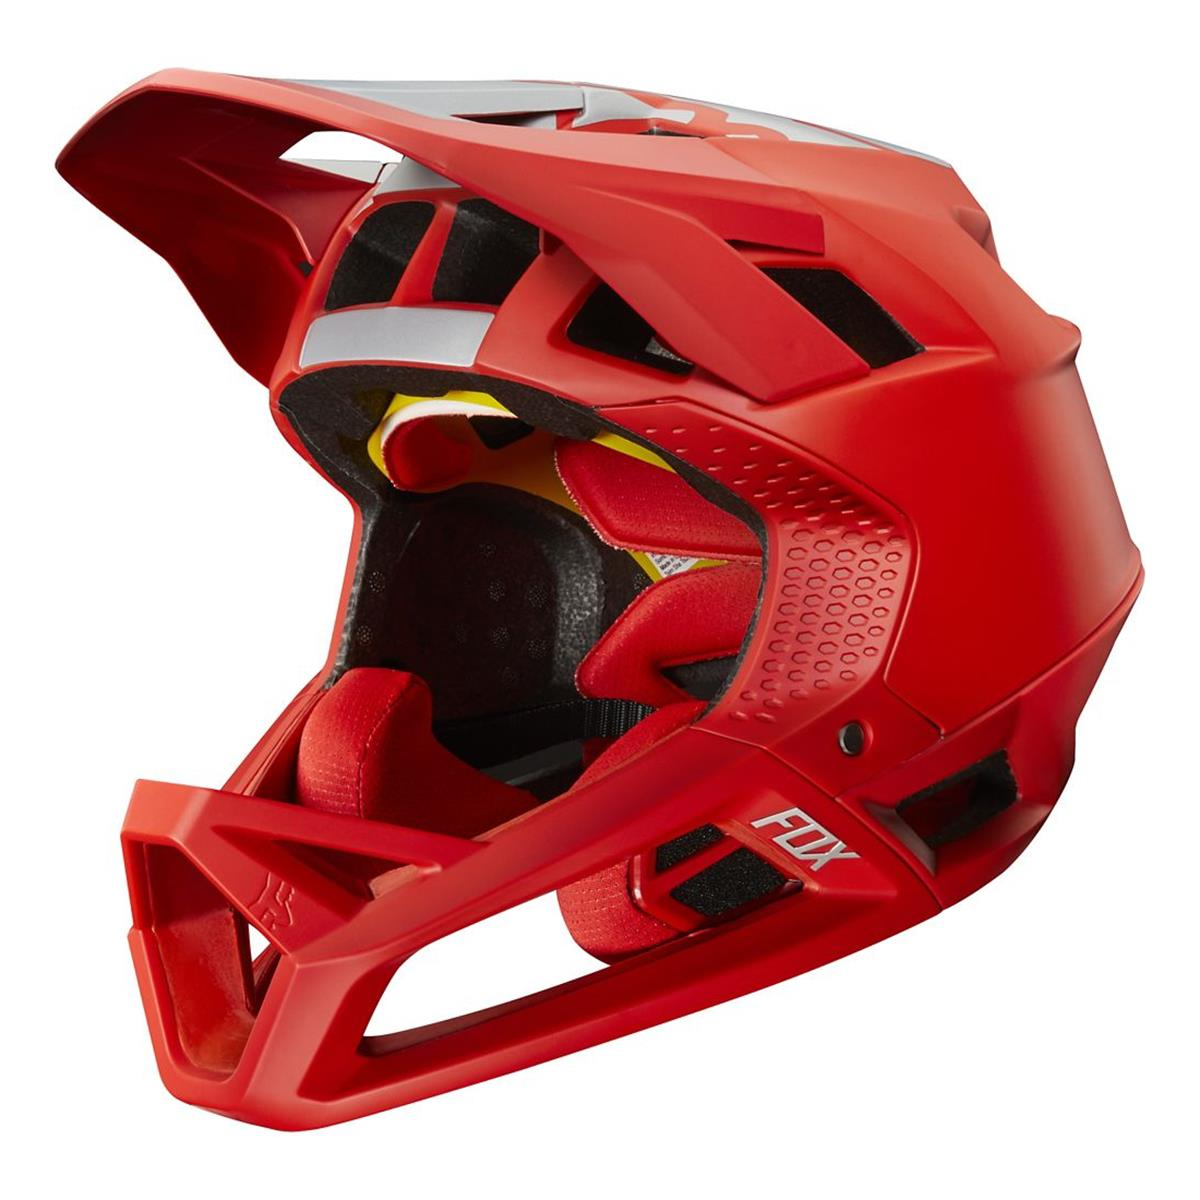 Fox Downhill-MTB Helm Proframe Limited Edition WIDE OPEN - Bright Red